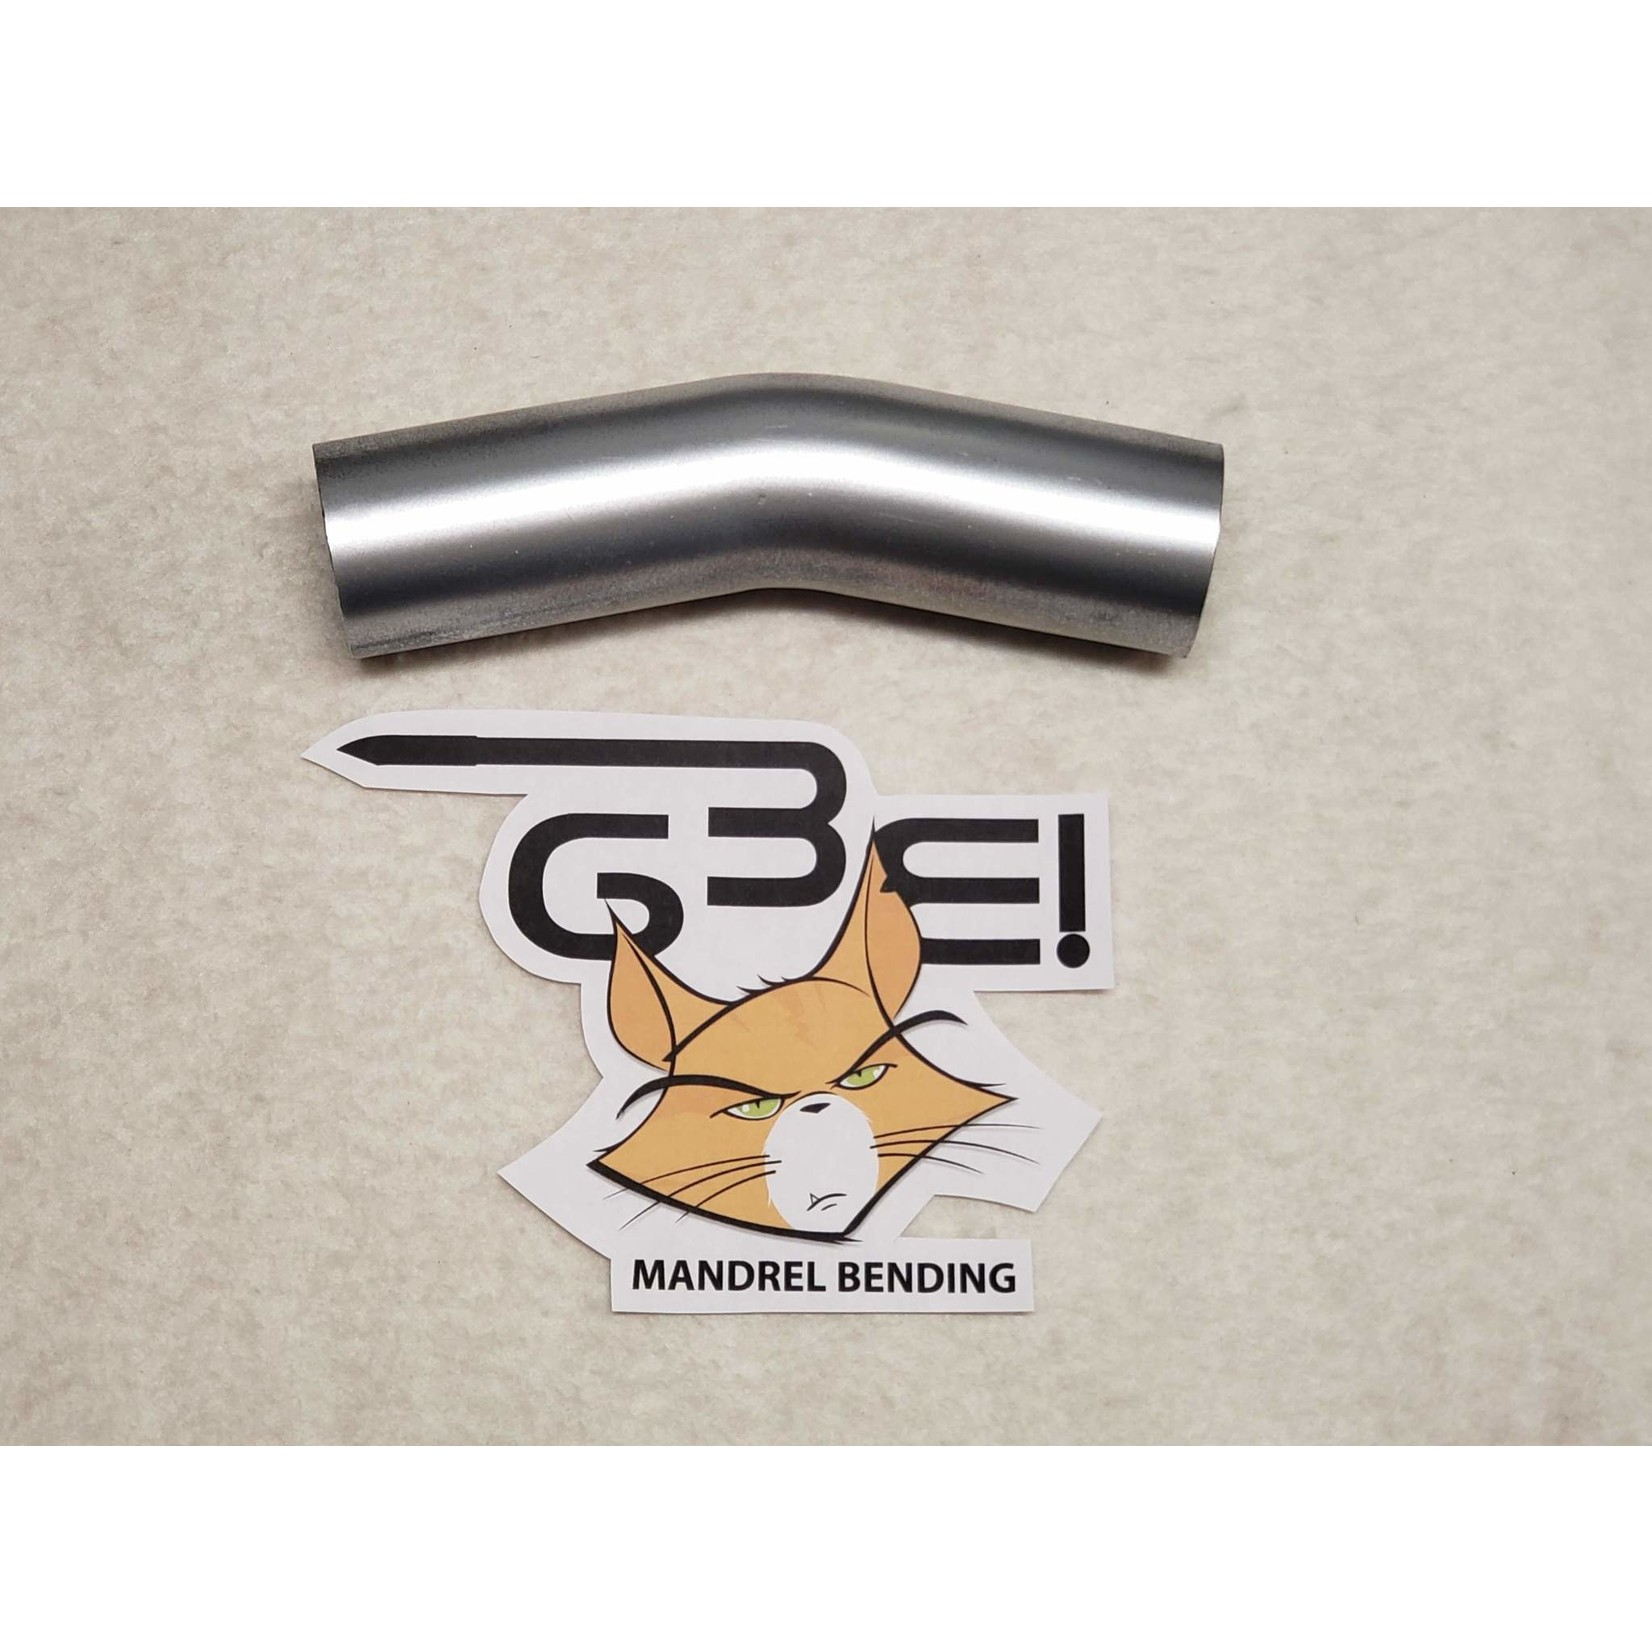 "GBE 3"" 18 DEGREE ALUMINIZED BEND"